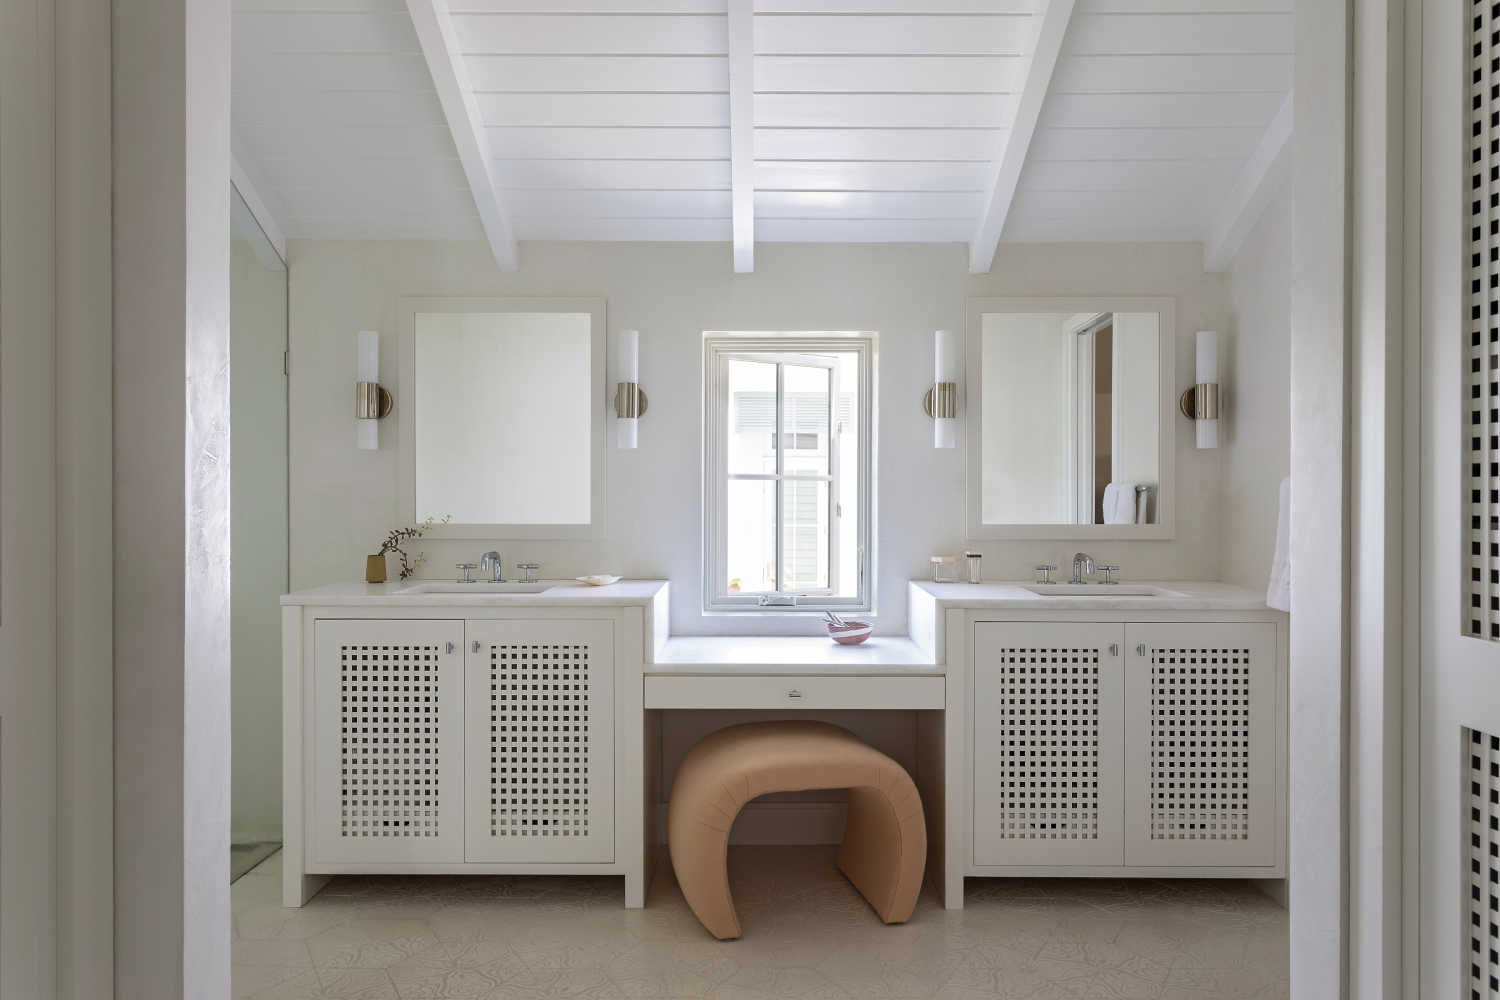 White bathroom with window and two vanity sinks